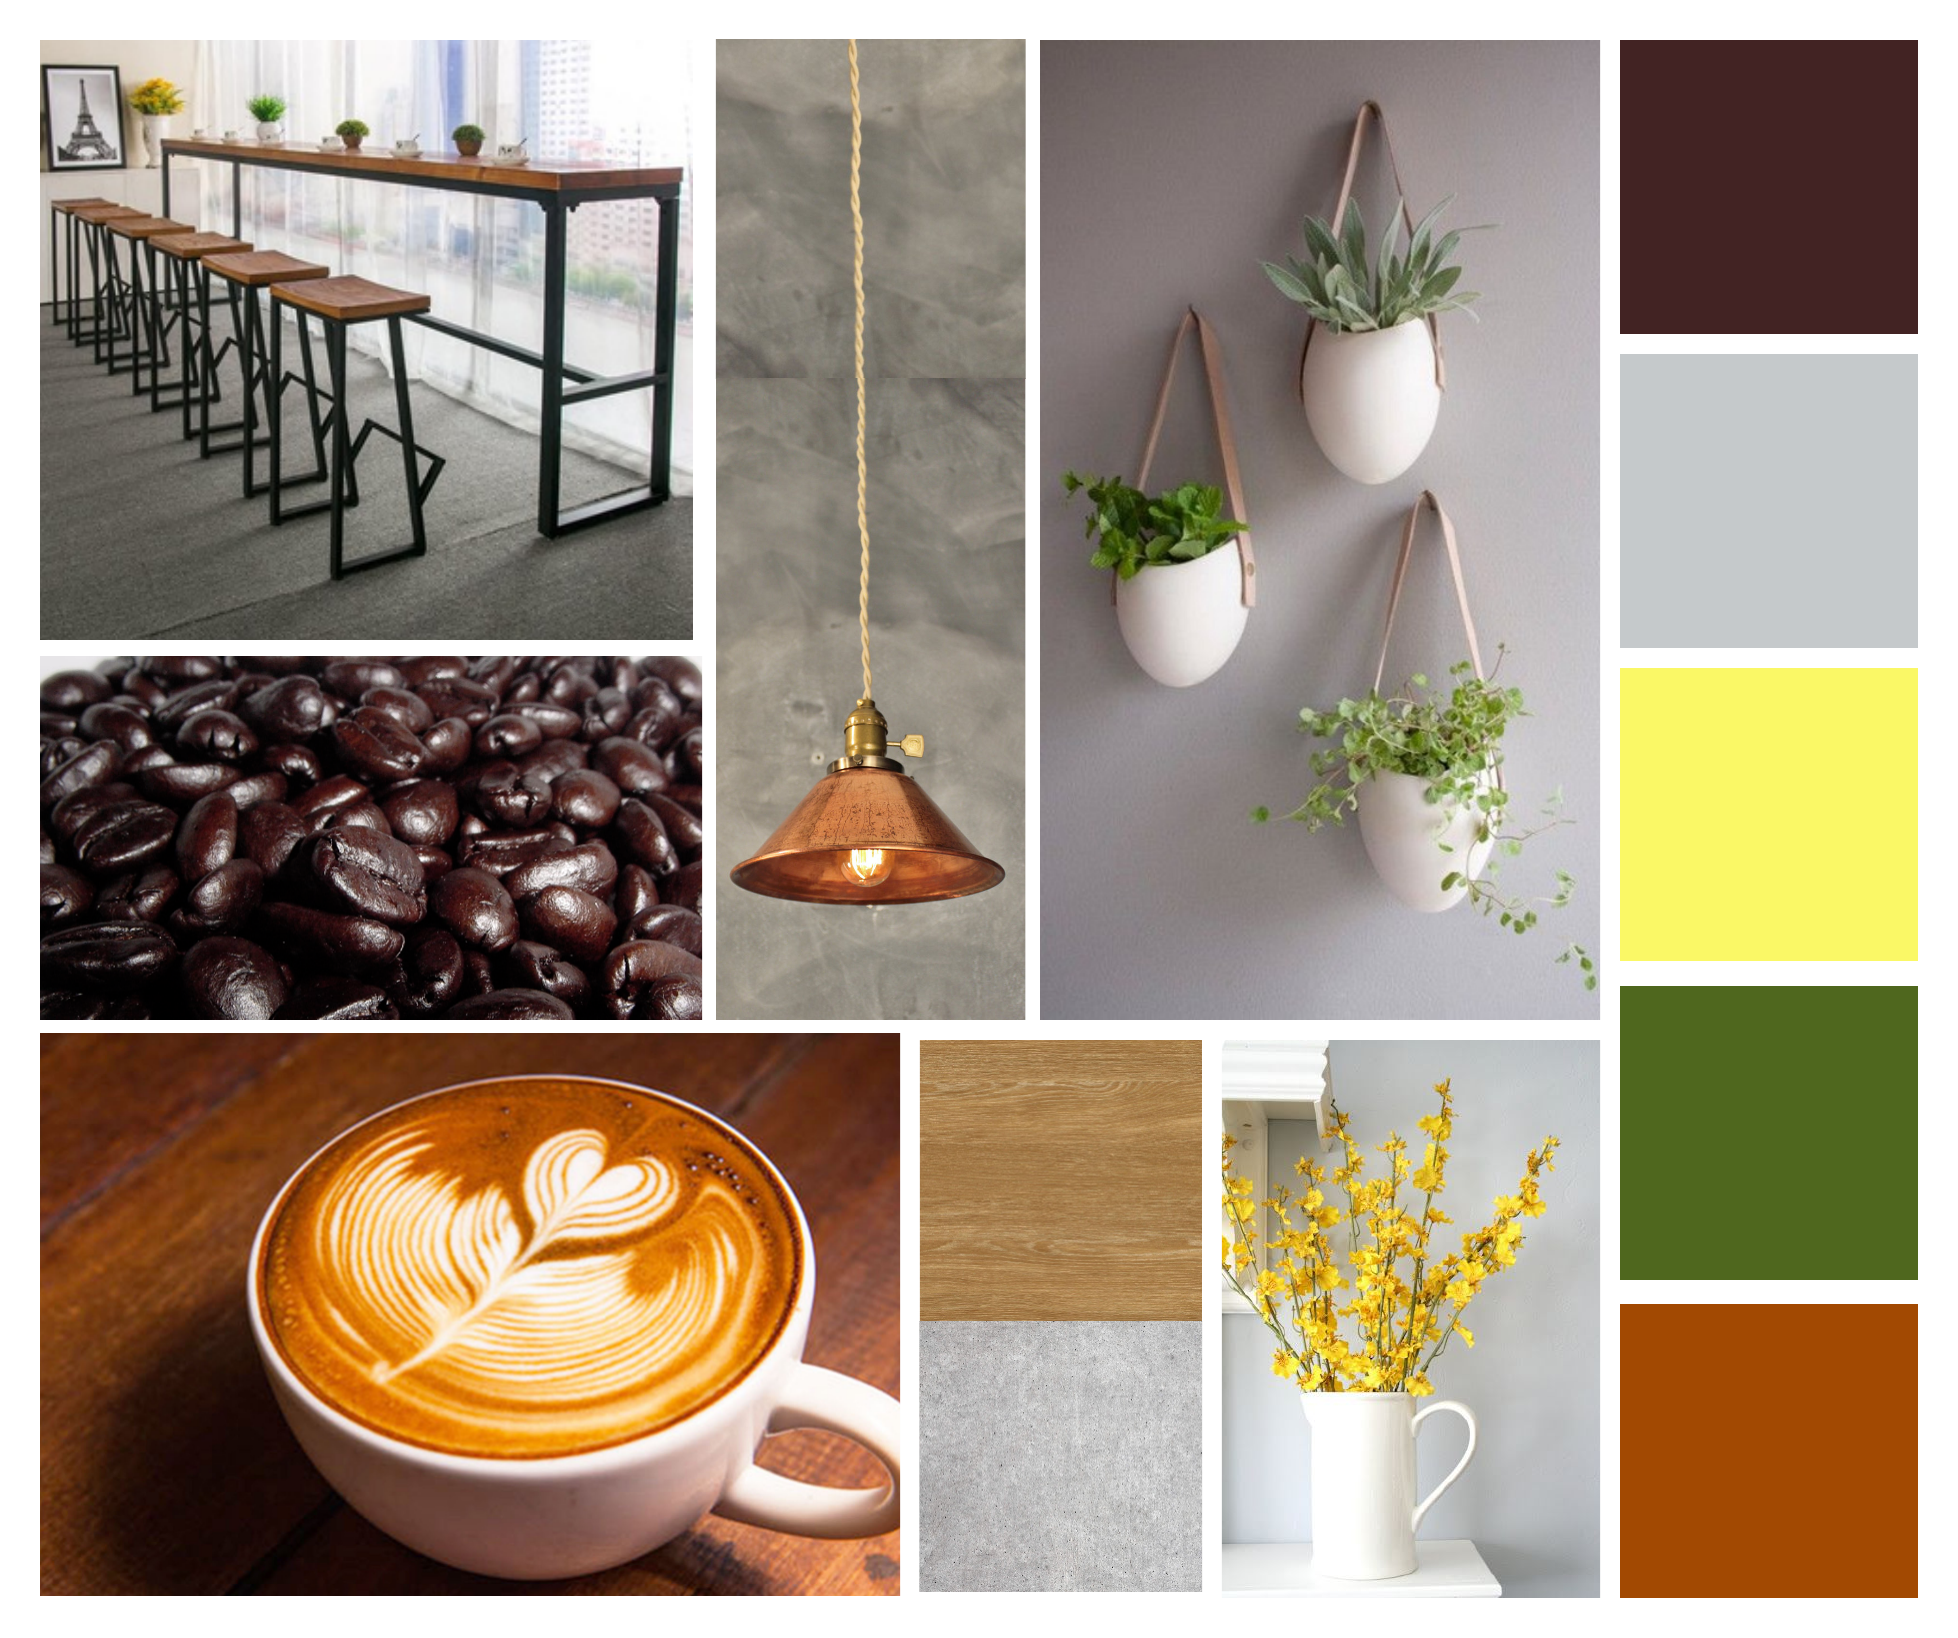 mood board example for coffee shop